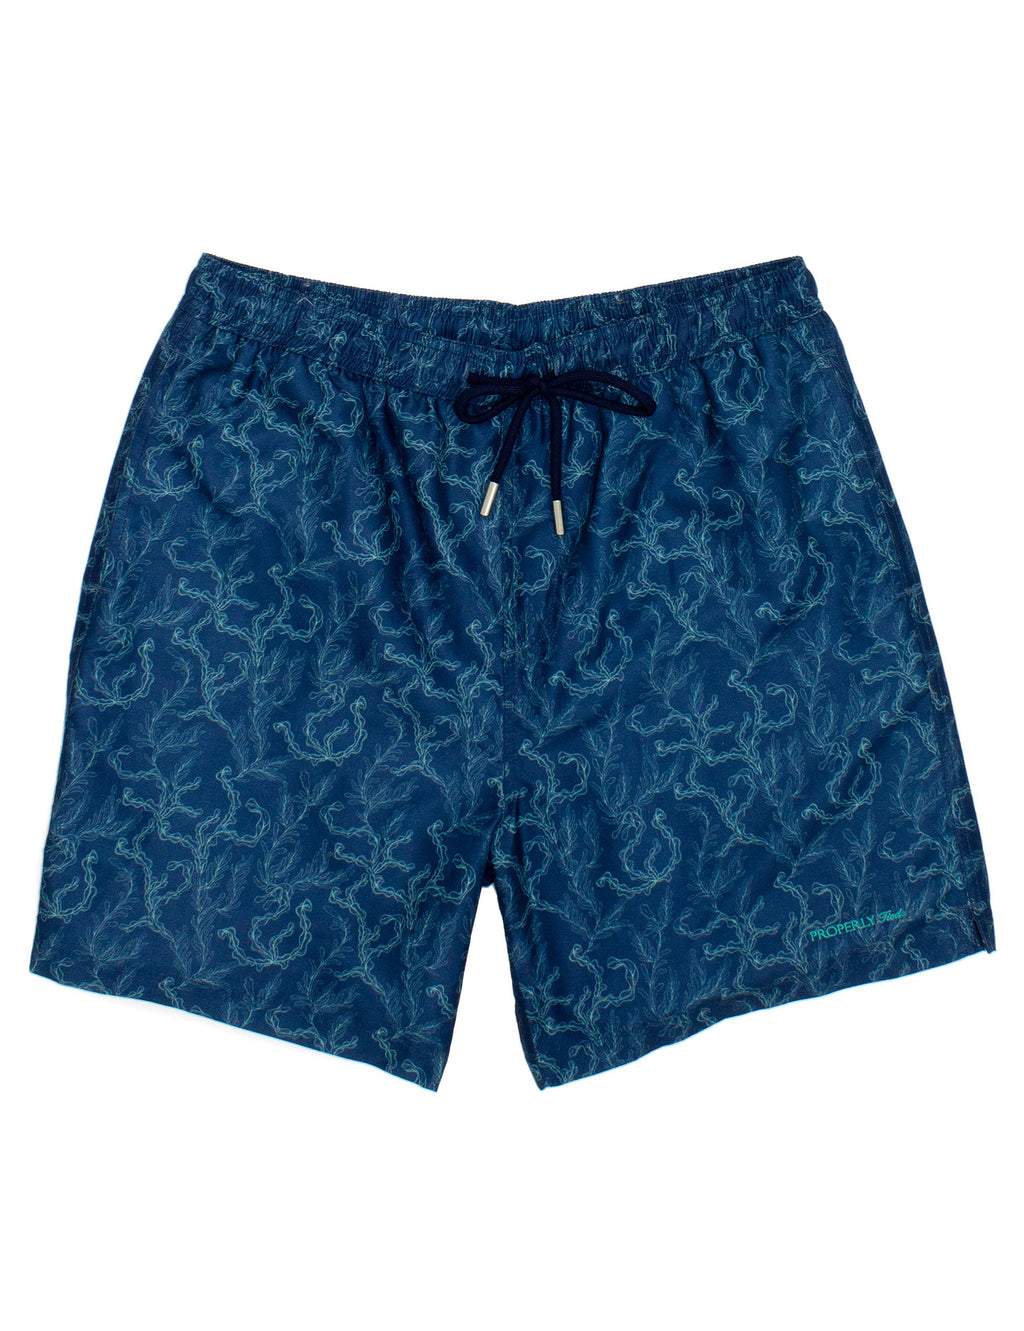 Properly Tied Boys Swim Trunks - Coral Reef